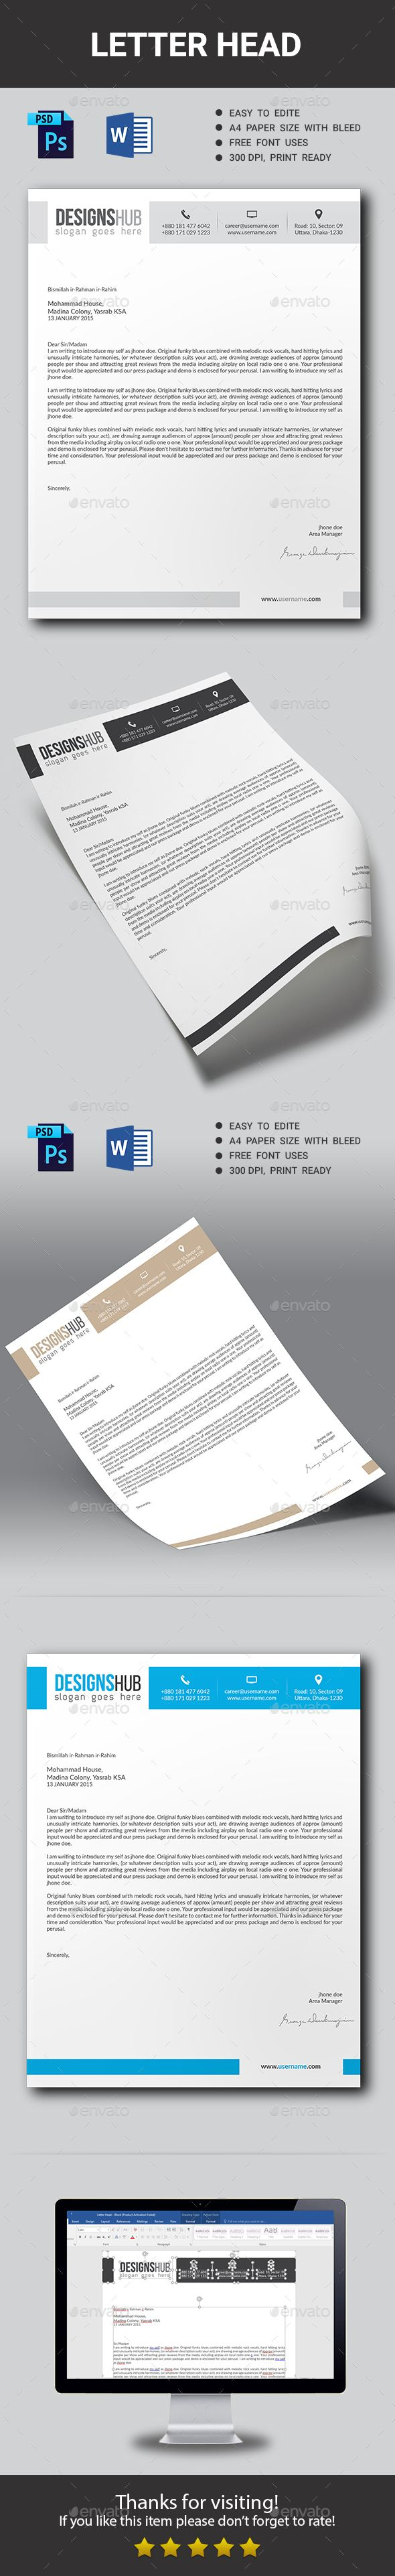 Corporate letter head stationery printing print templates and corporate letter head stationery print templates download here https spiritdancerdesigns Images